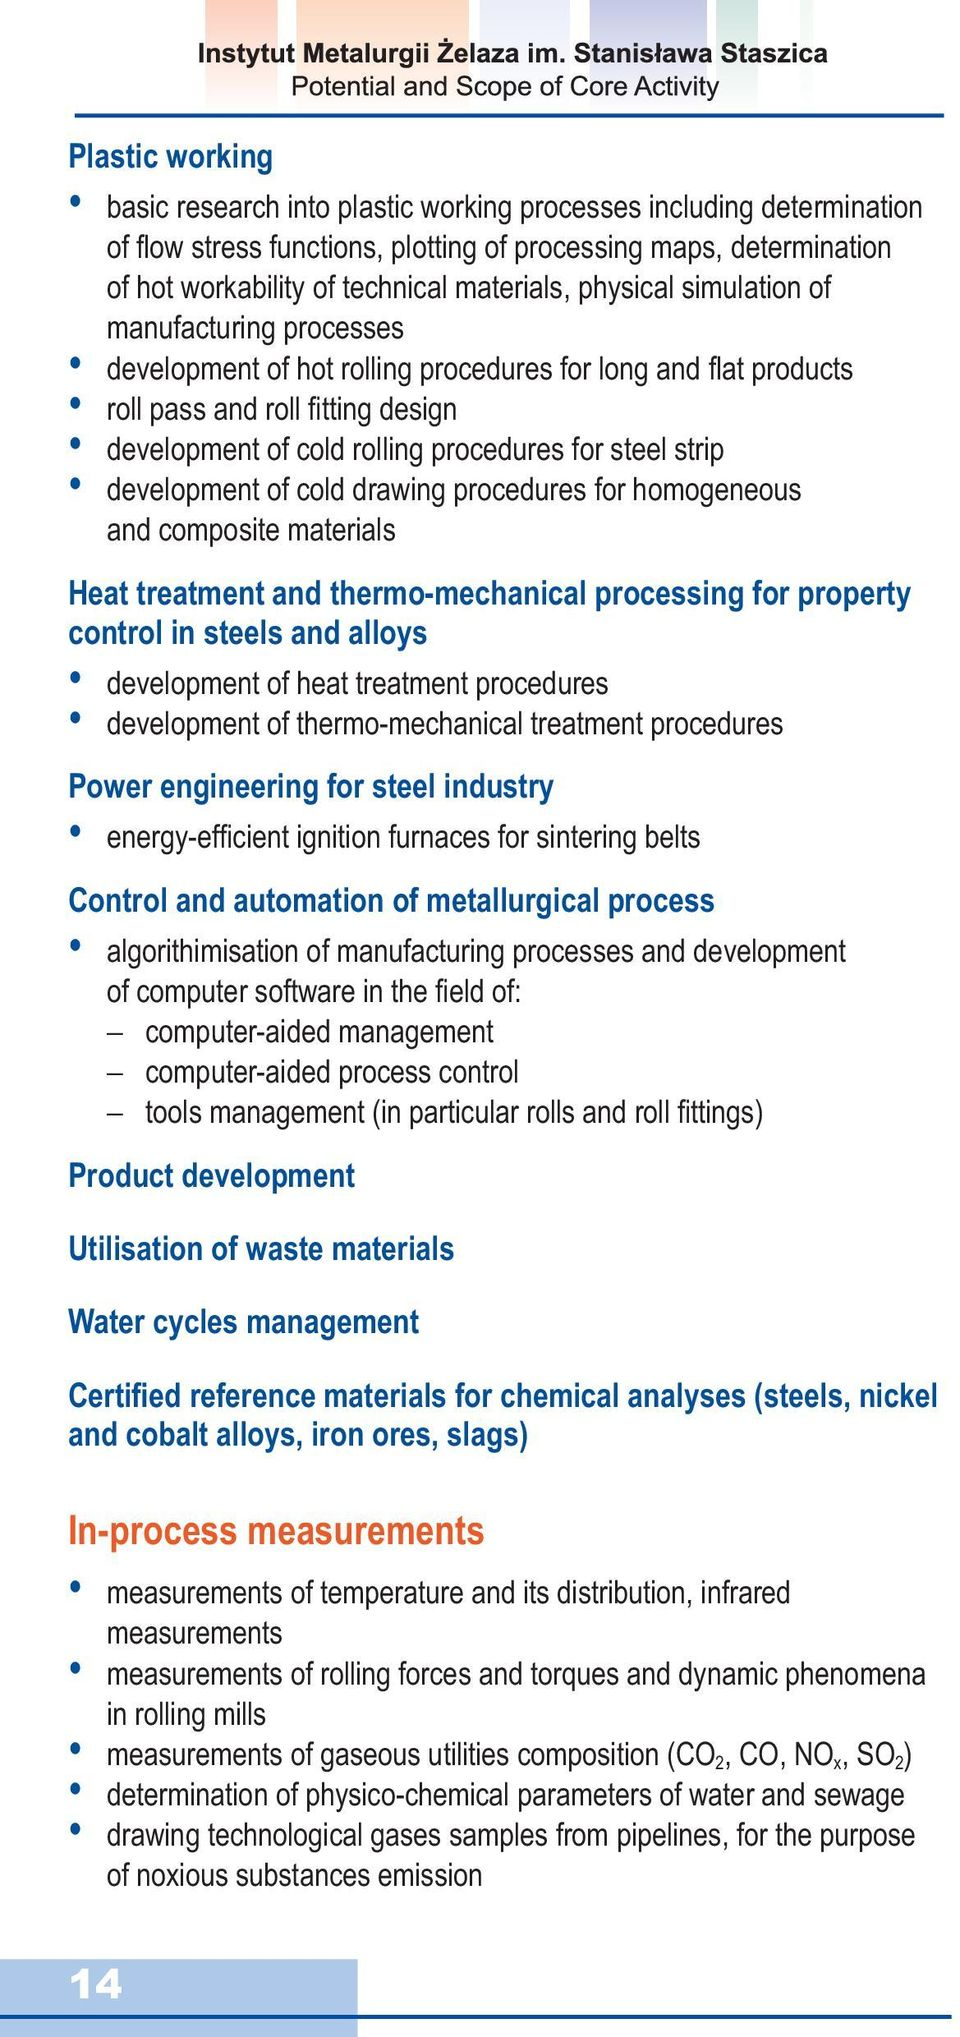 strip development of cold drawing procedures for homogeneous and composite materials Heat treatment and thermo-mechanical processing for property control in steels and alloys development of heat